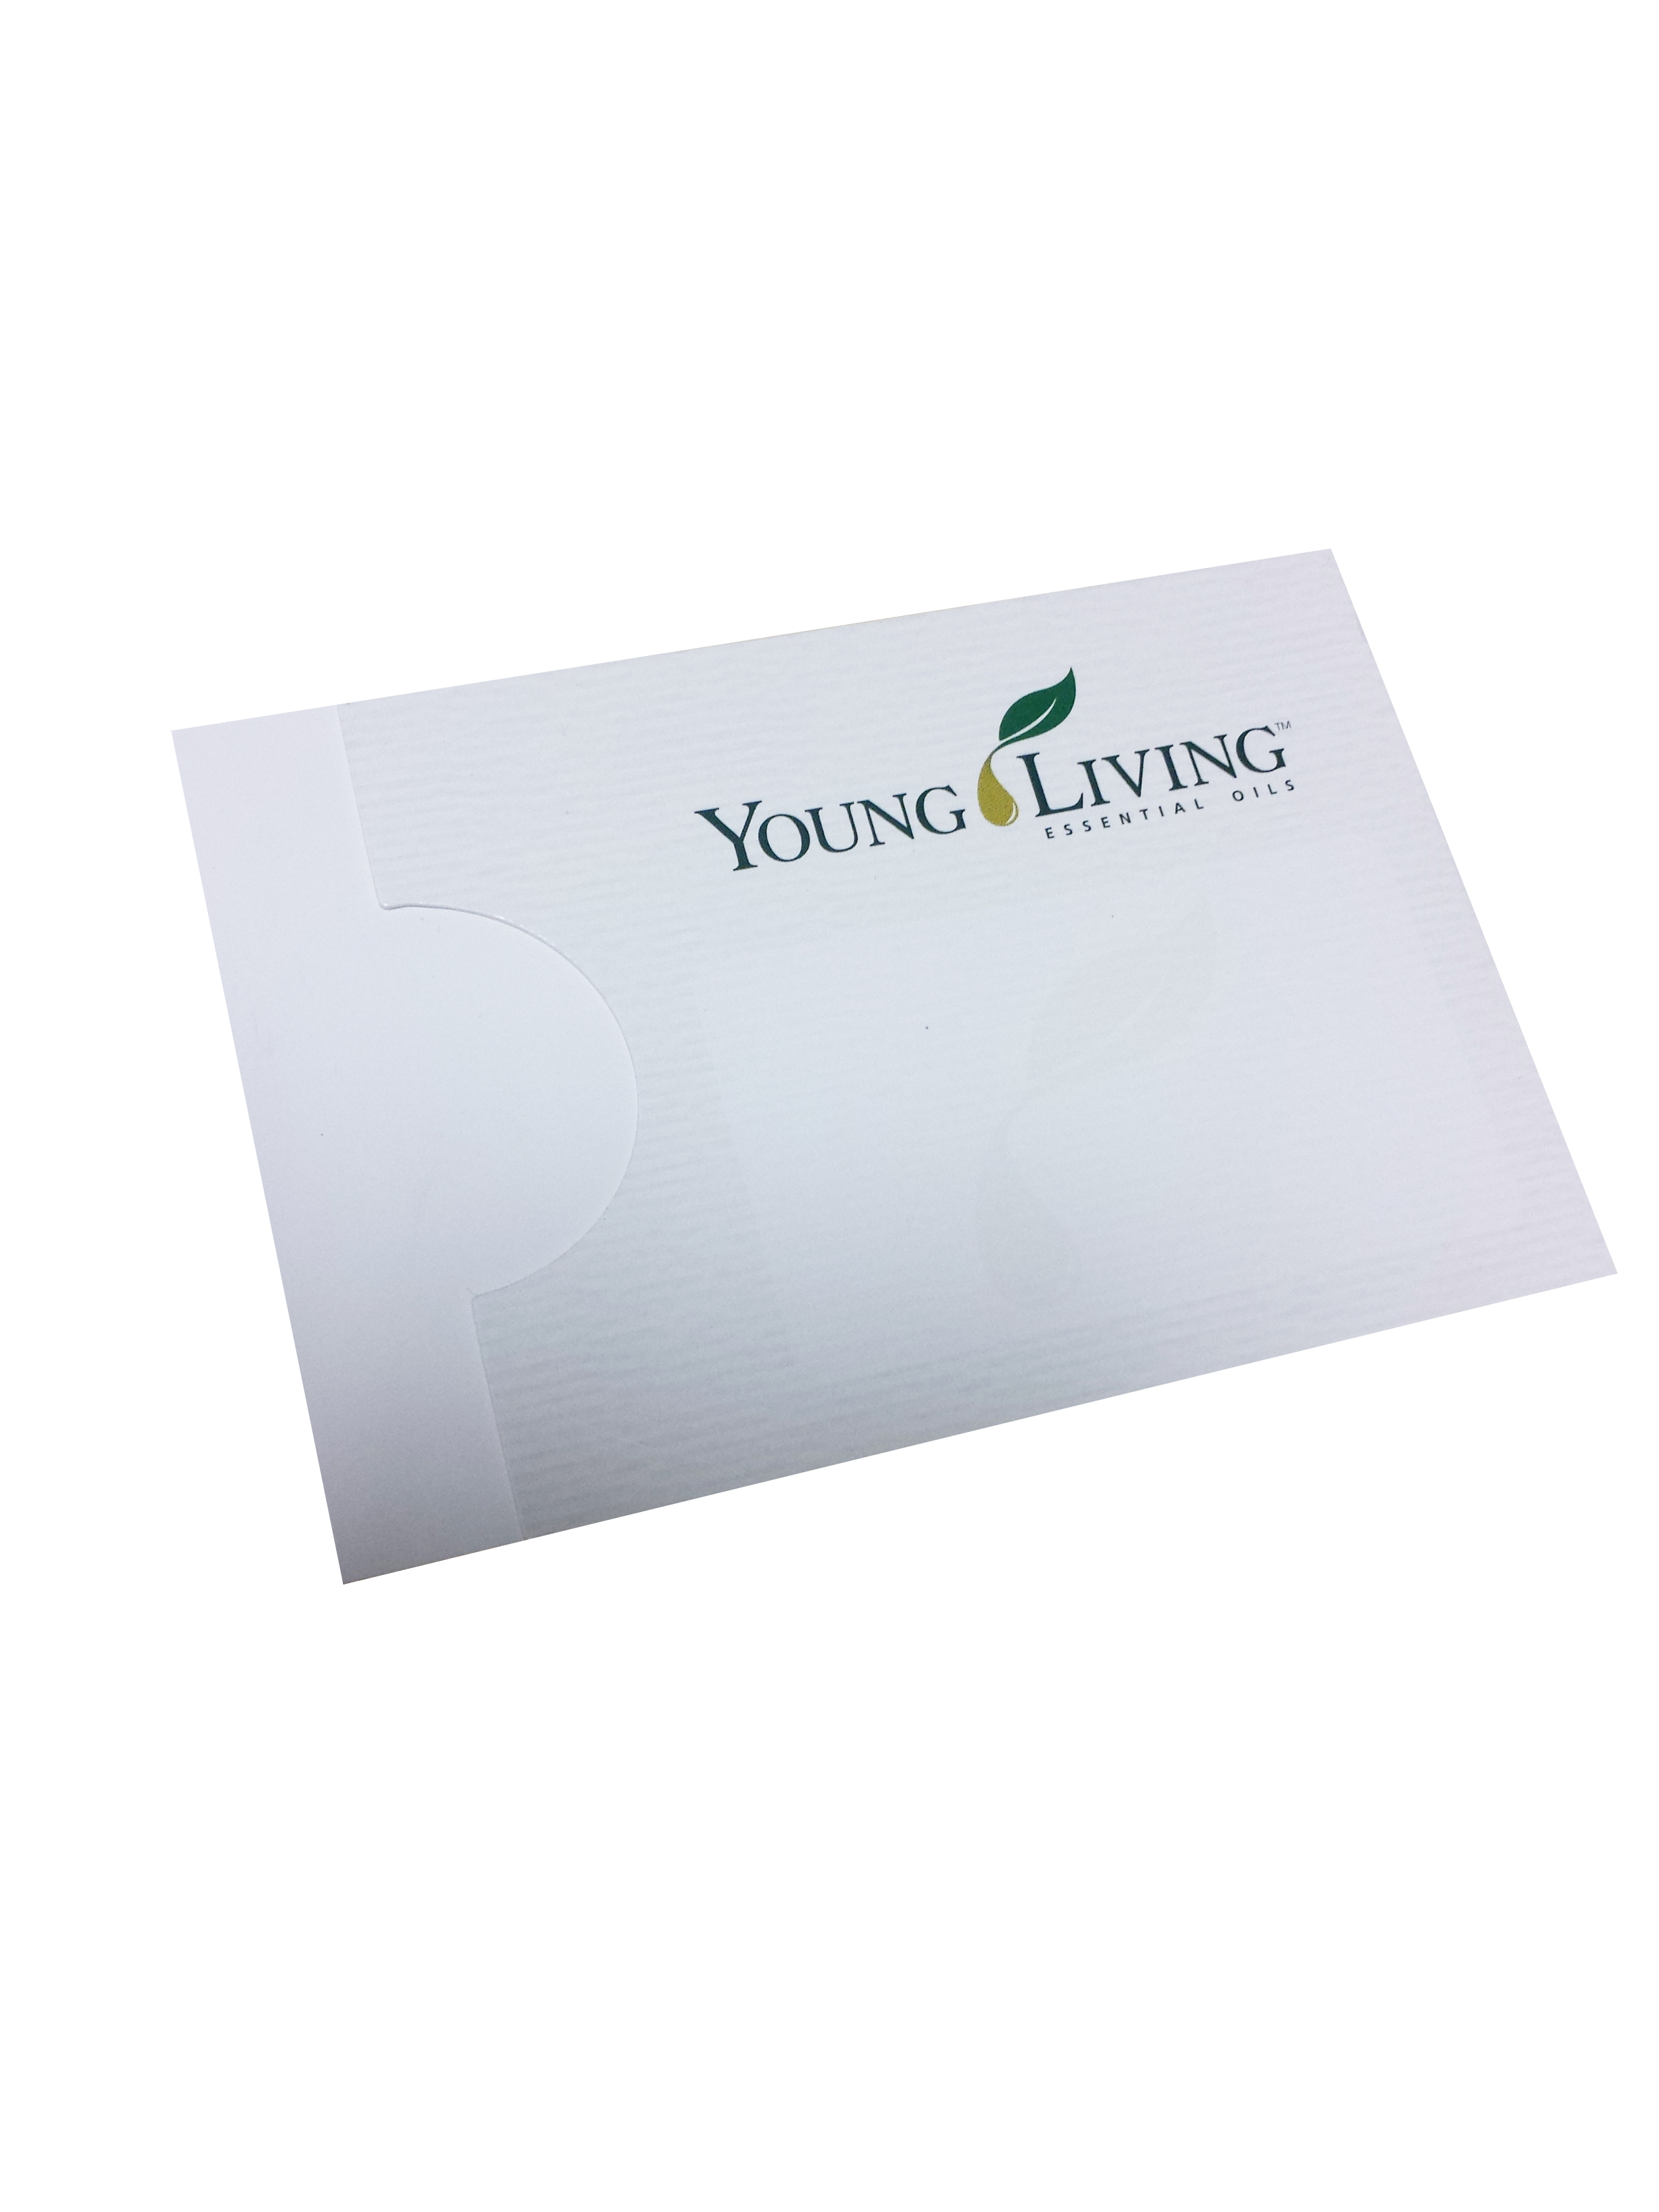 Sample Sachet Business Cards - 100 pk